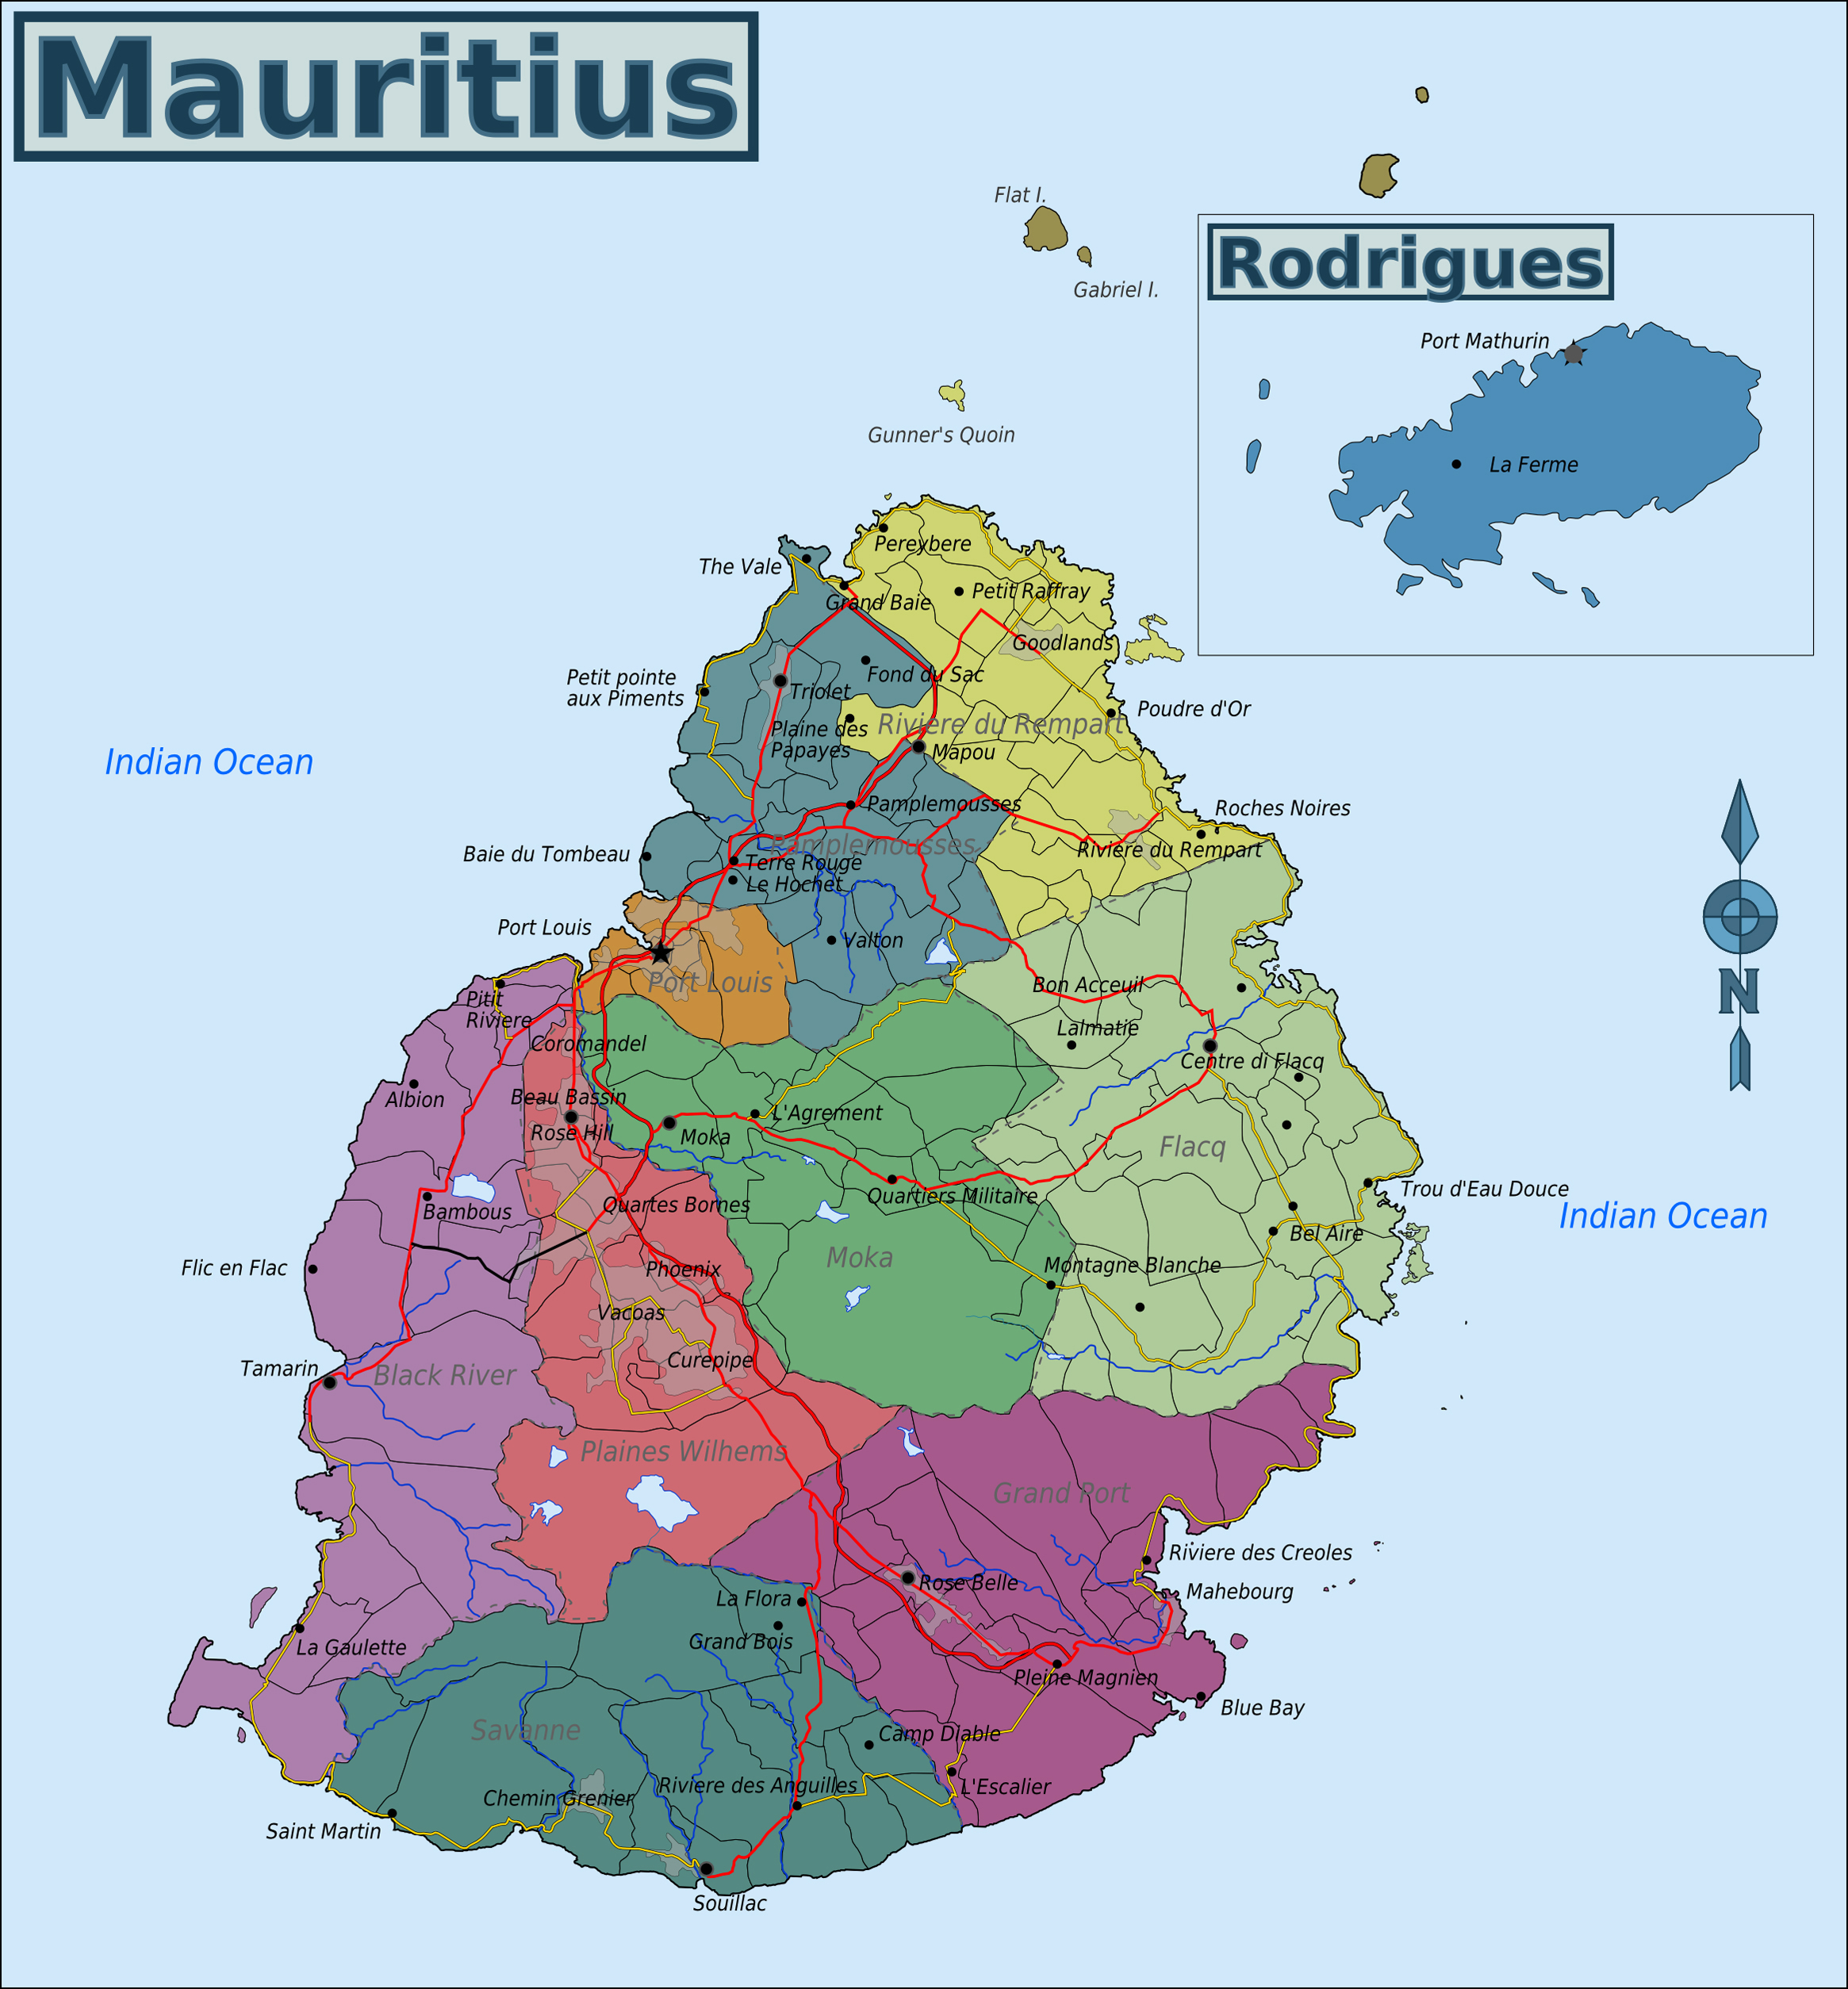 Full Political Map Of Mauritius Mauritius Full Political Map - Political map of mauritius